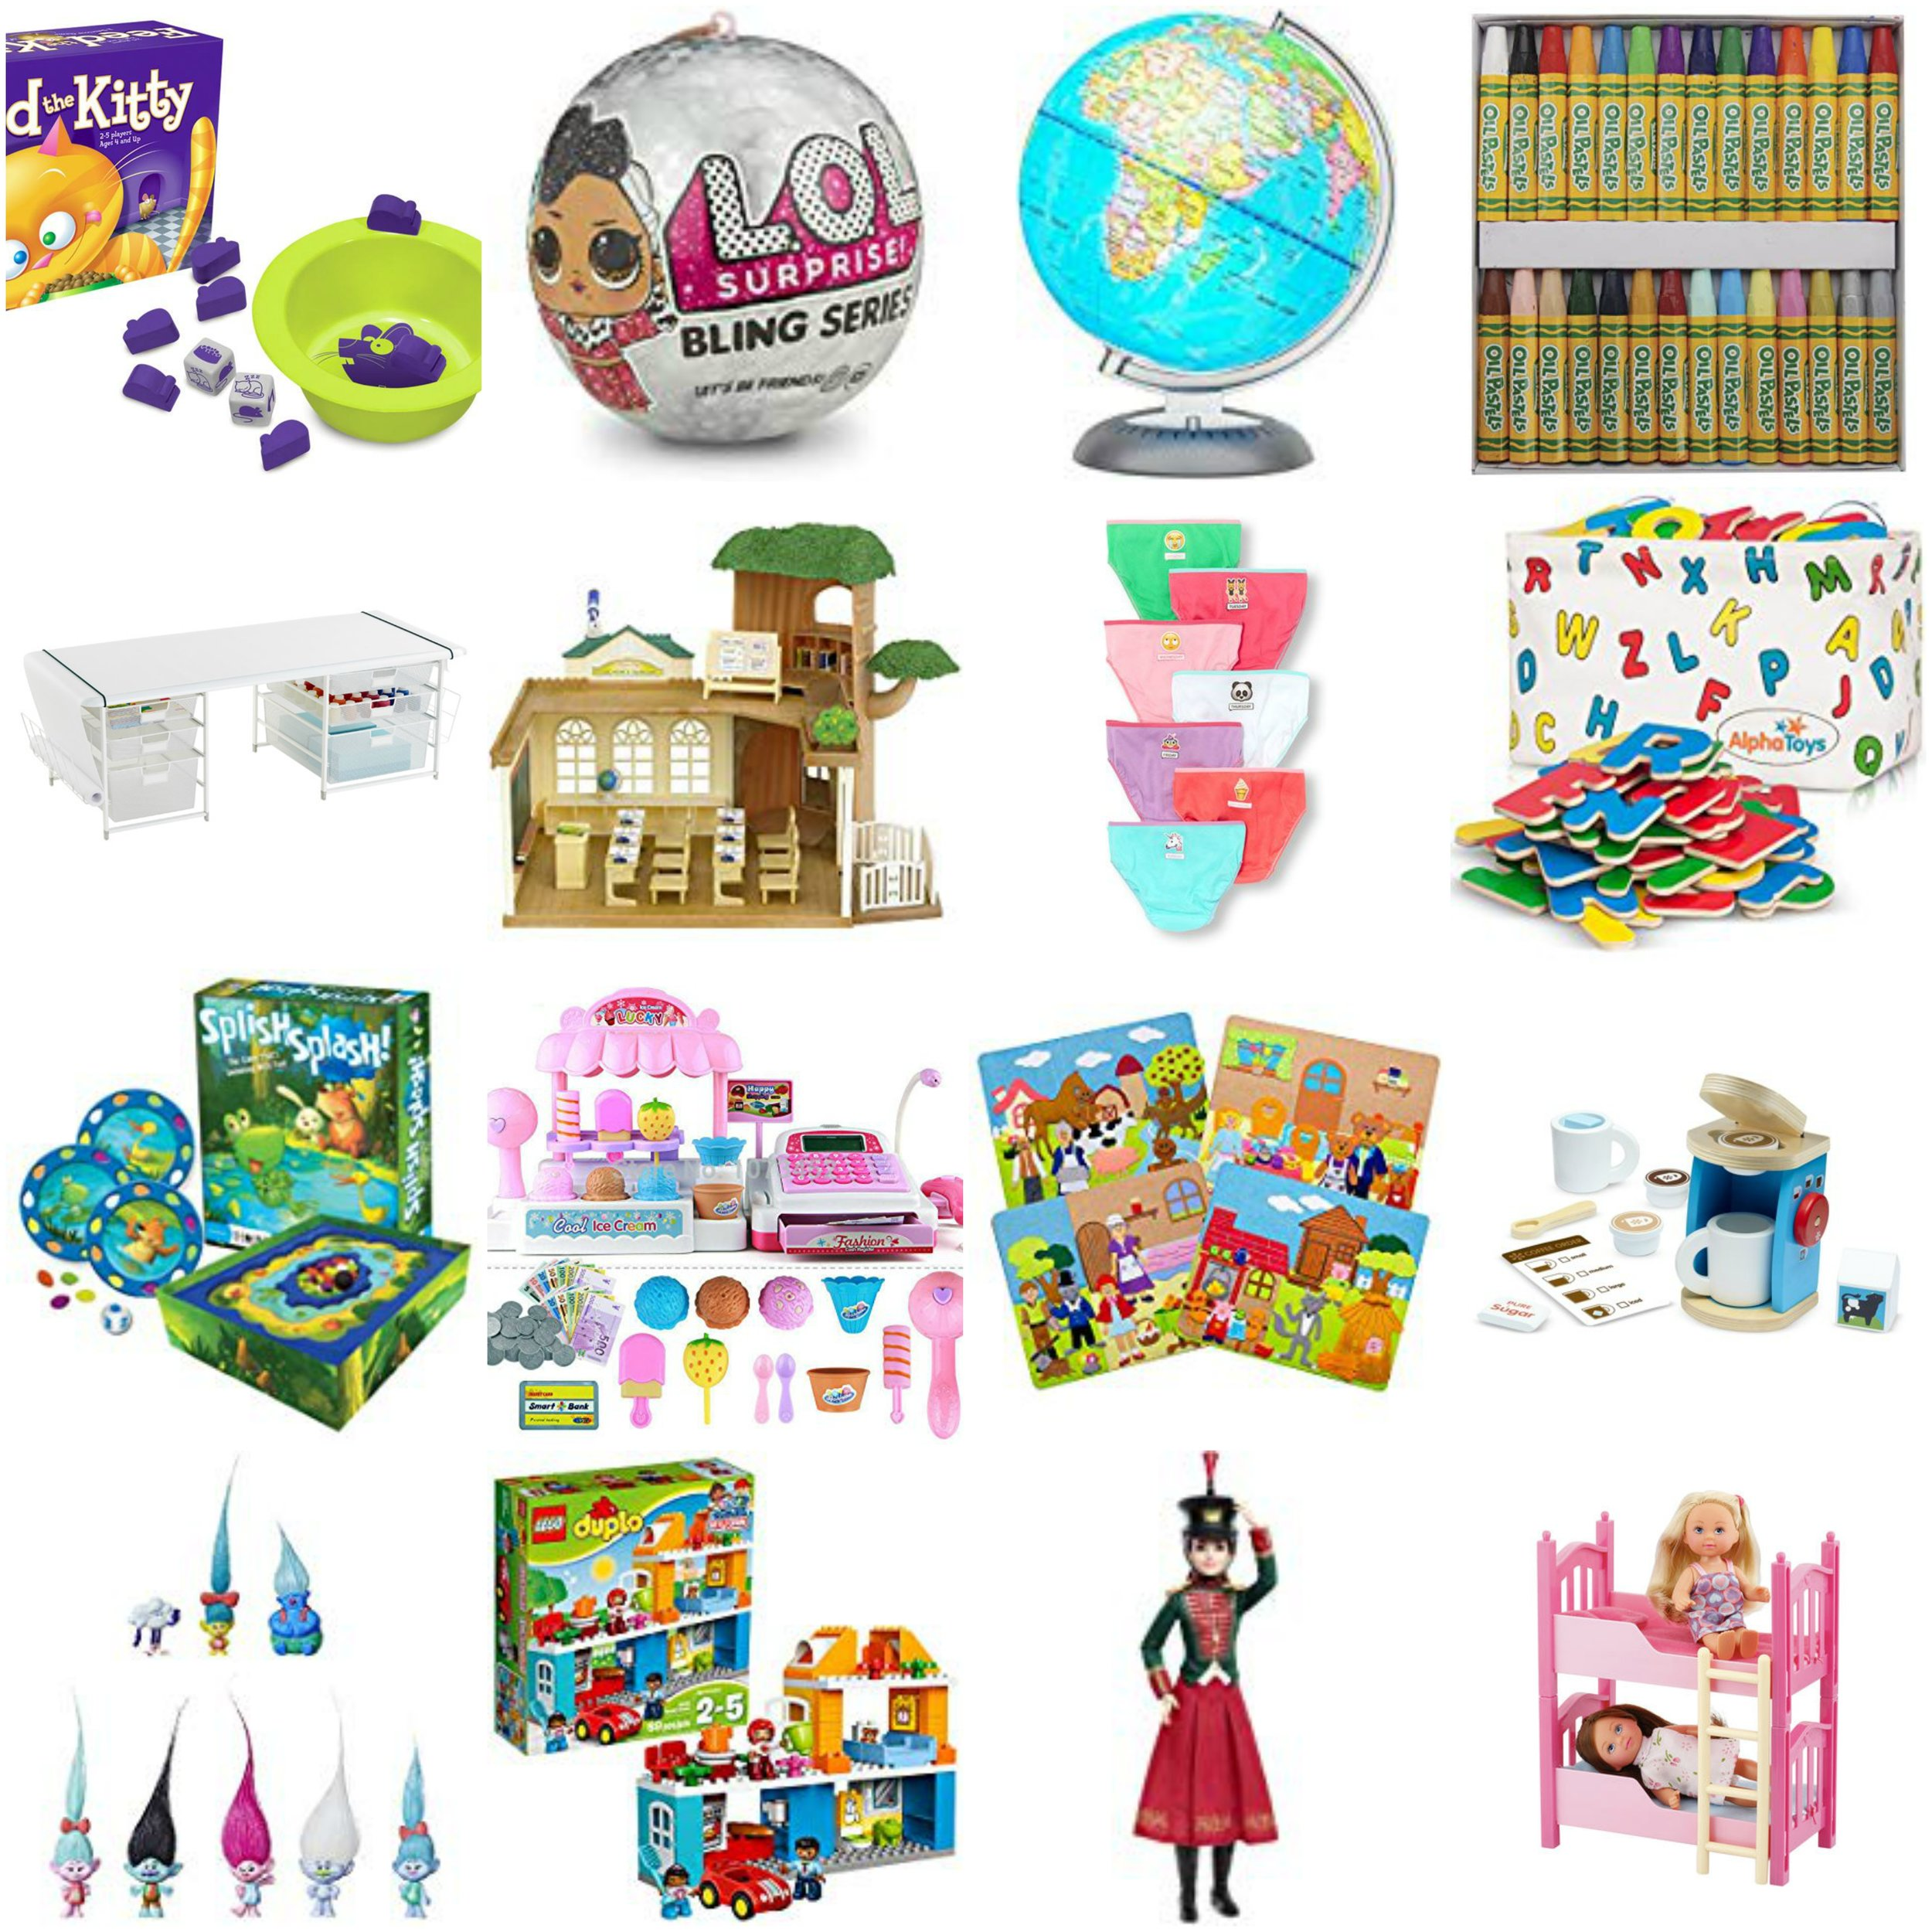 Holiday Gift Guide Toddler Girl Age 3 to 5.jpg